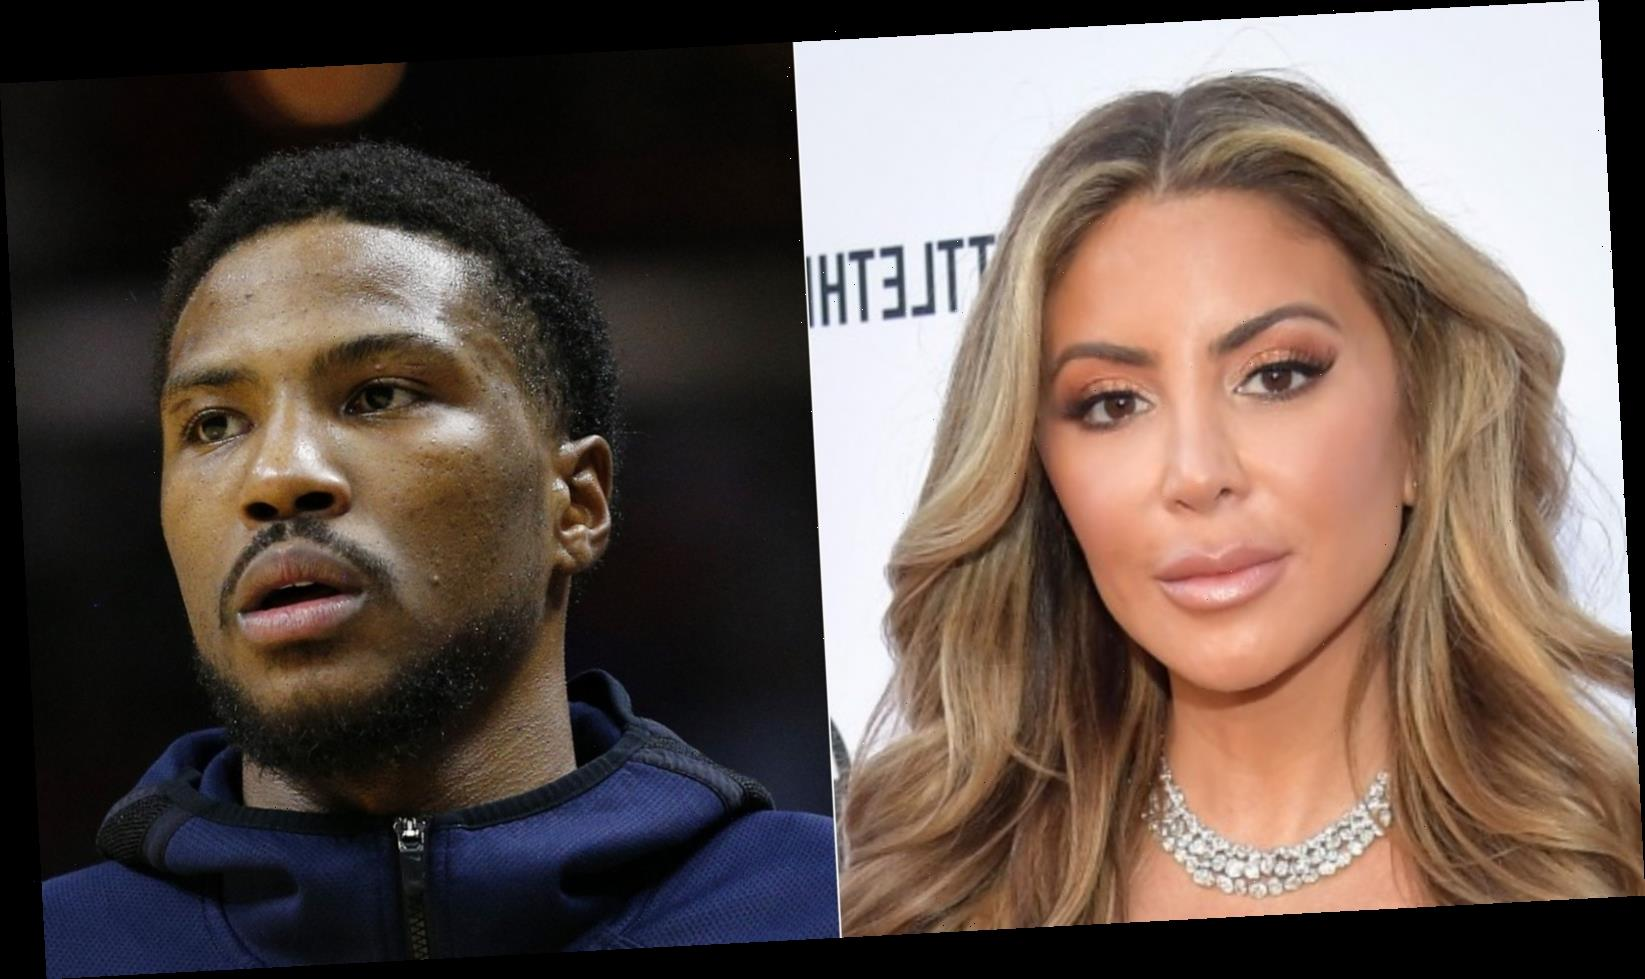 Larsa Pippen's latest romance leads to a high-profile divorce